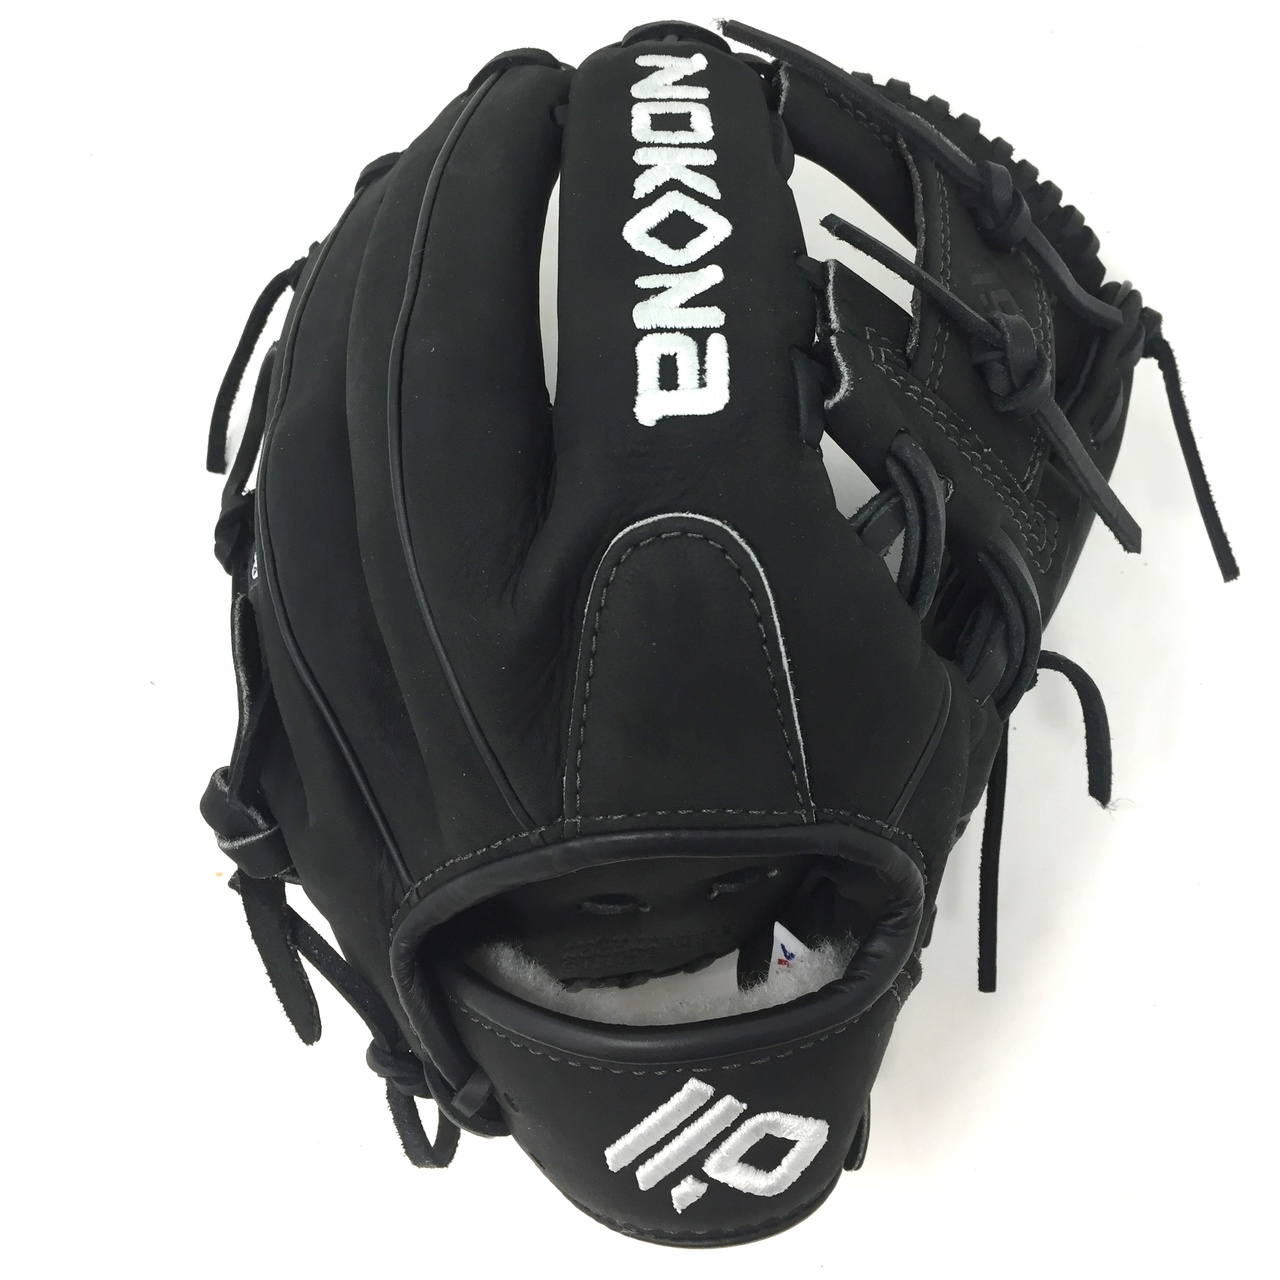 nokona-youth-baseball-glove-xft-supersoft-11-25-right-hand-throw XFT-200I-OX-RightHandThrow  808808893486 The XFT Supersoft series a limited edition design that is like